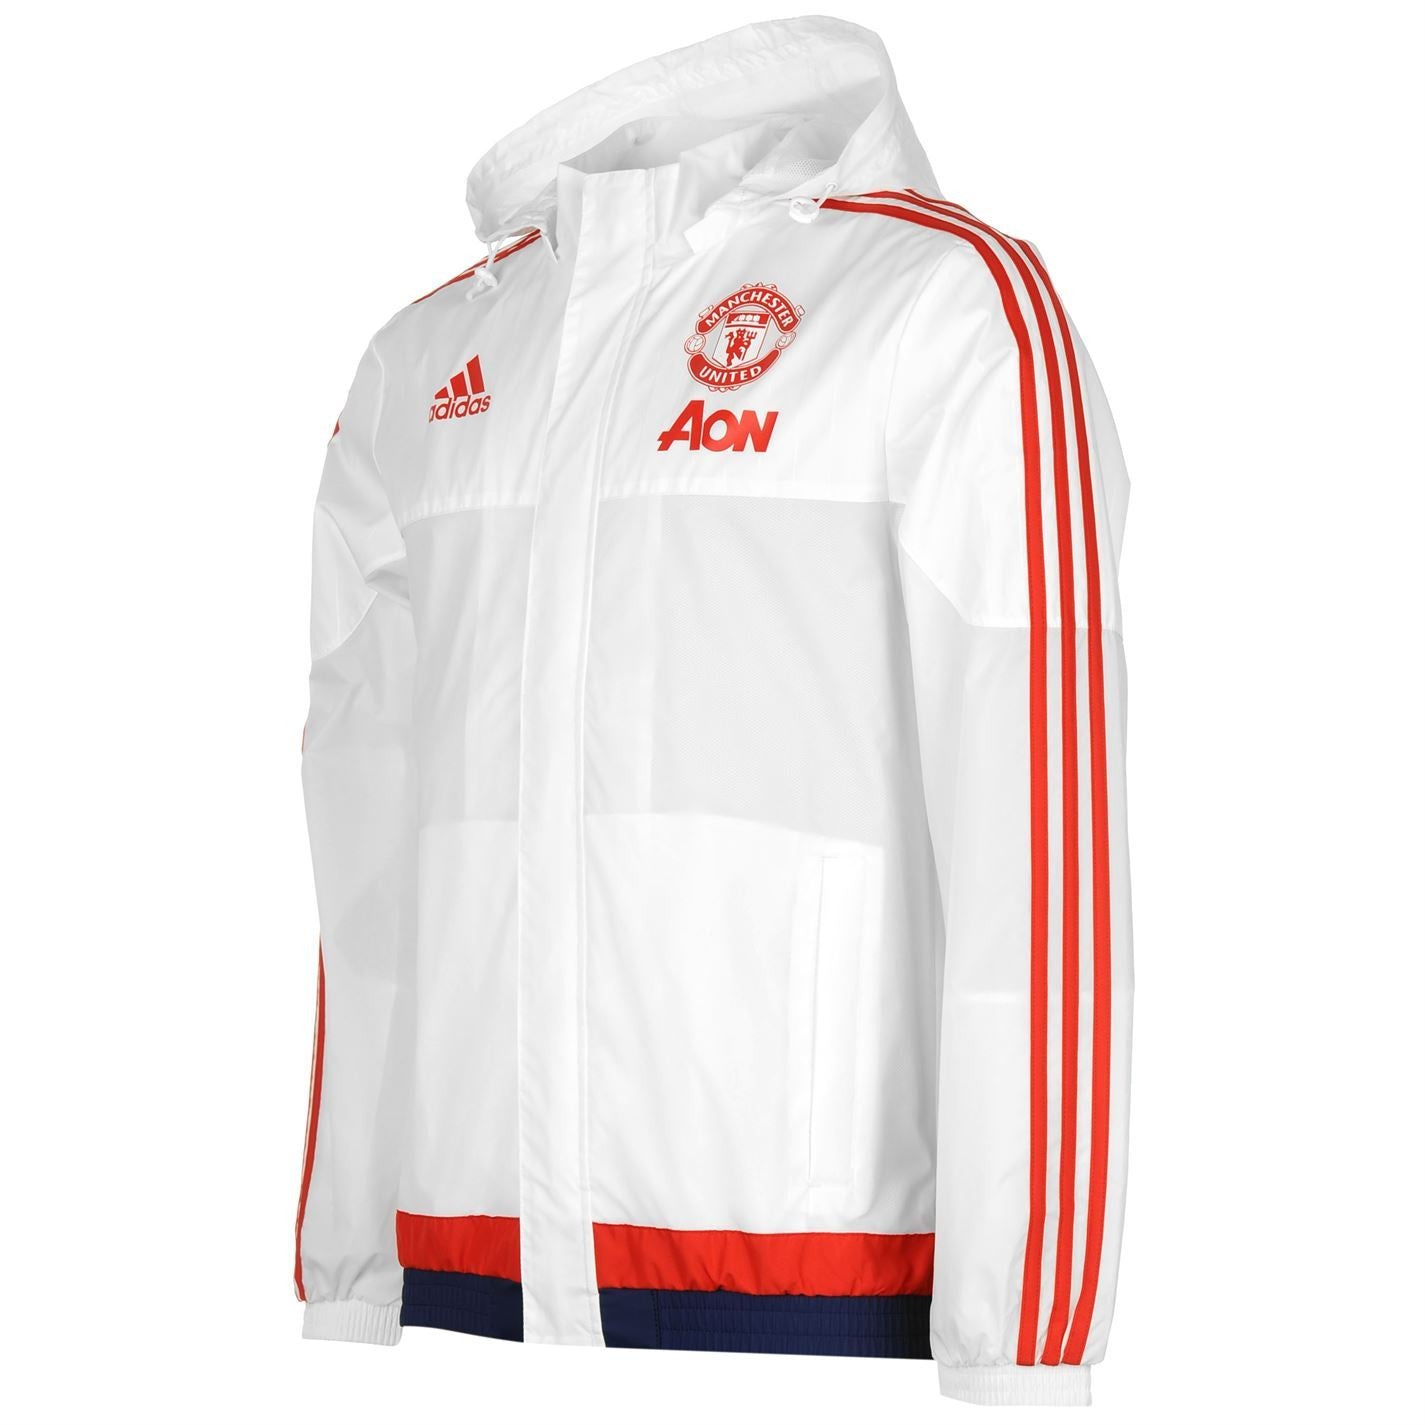 d0c35ebf72d ... man united white jacket manchester united white jacket on sale   OFF76%  Discounts ...